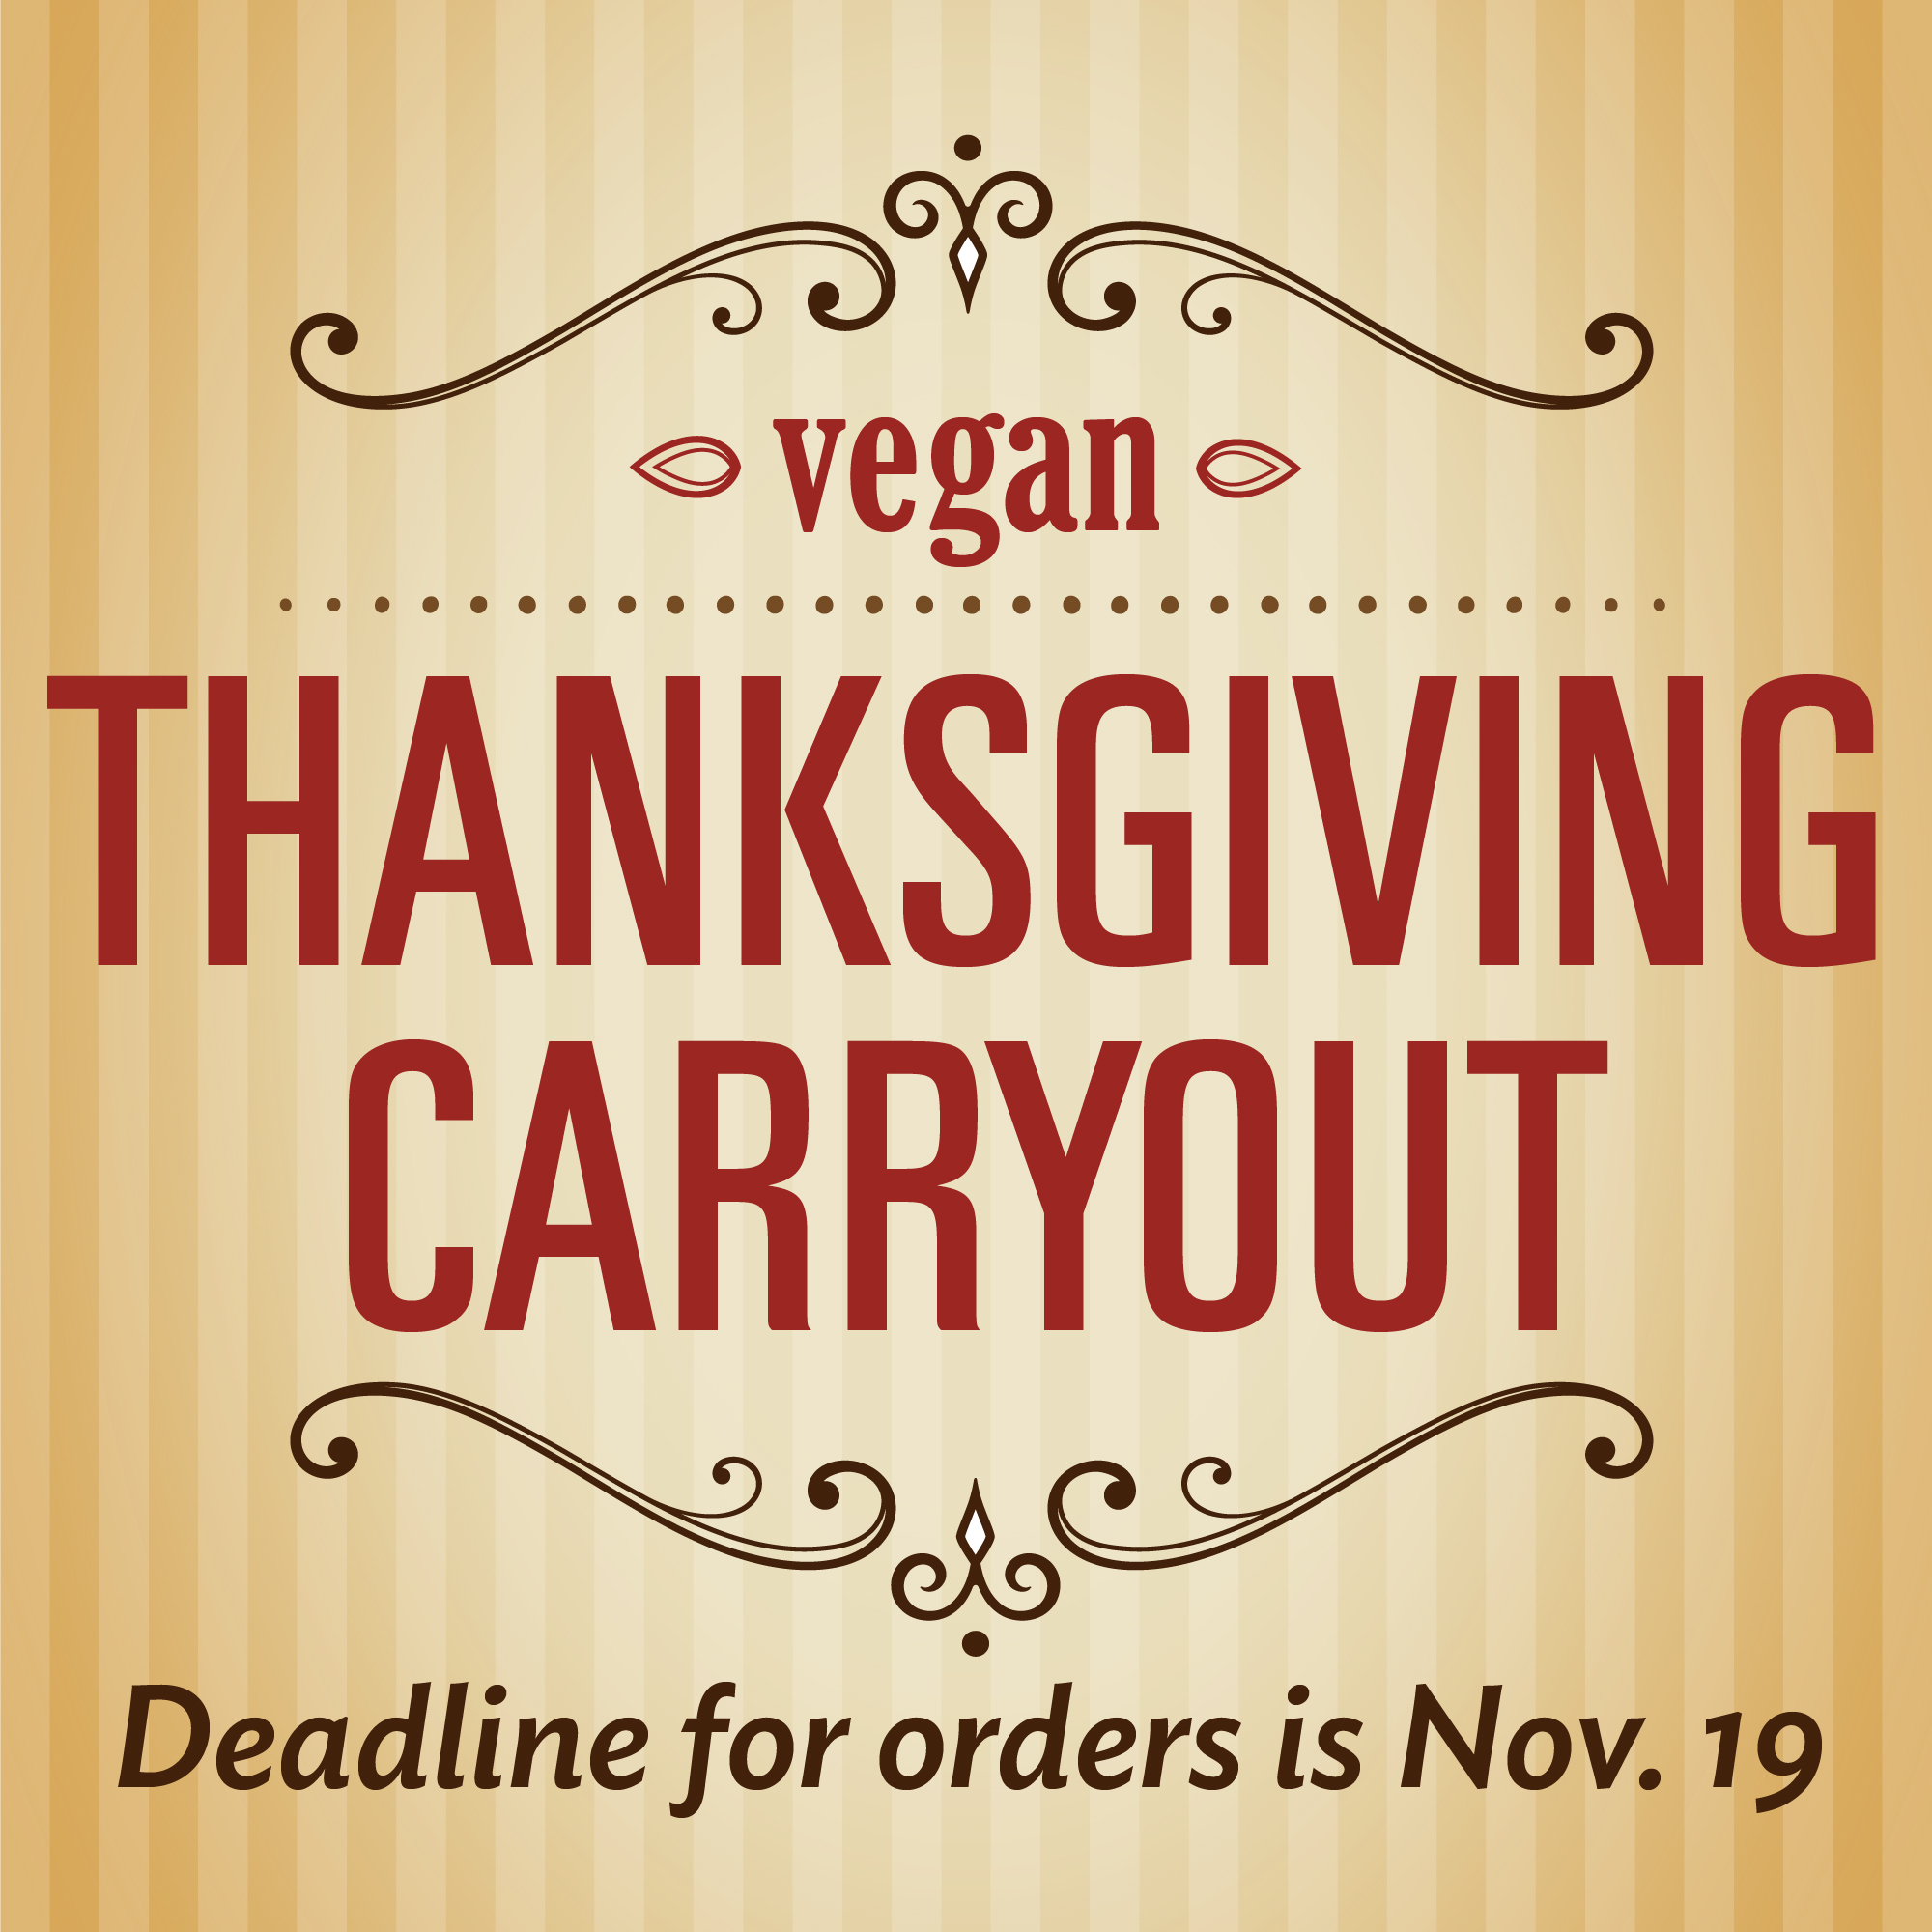 Thanksgiving Carryout Deadline is Nov. 19